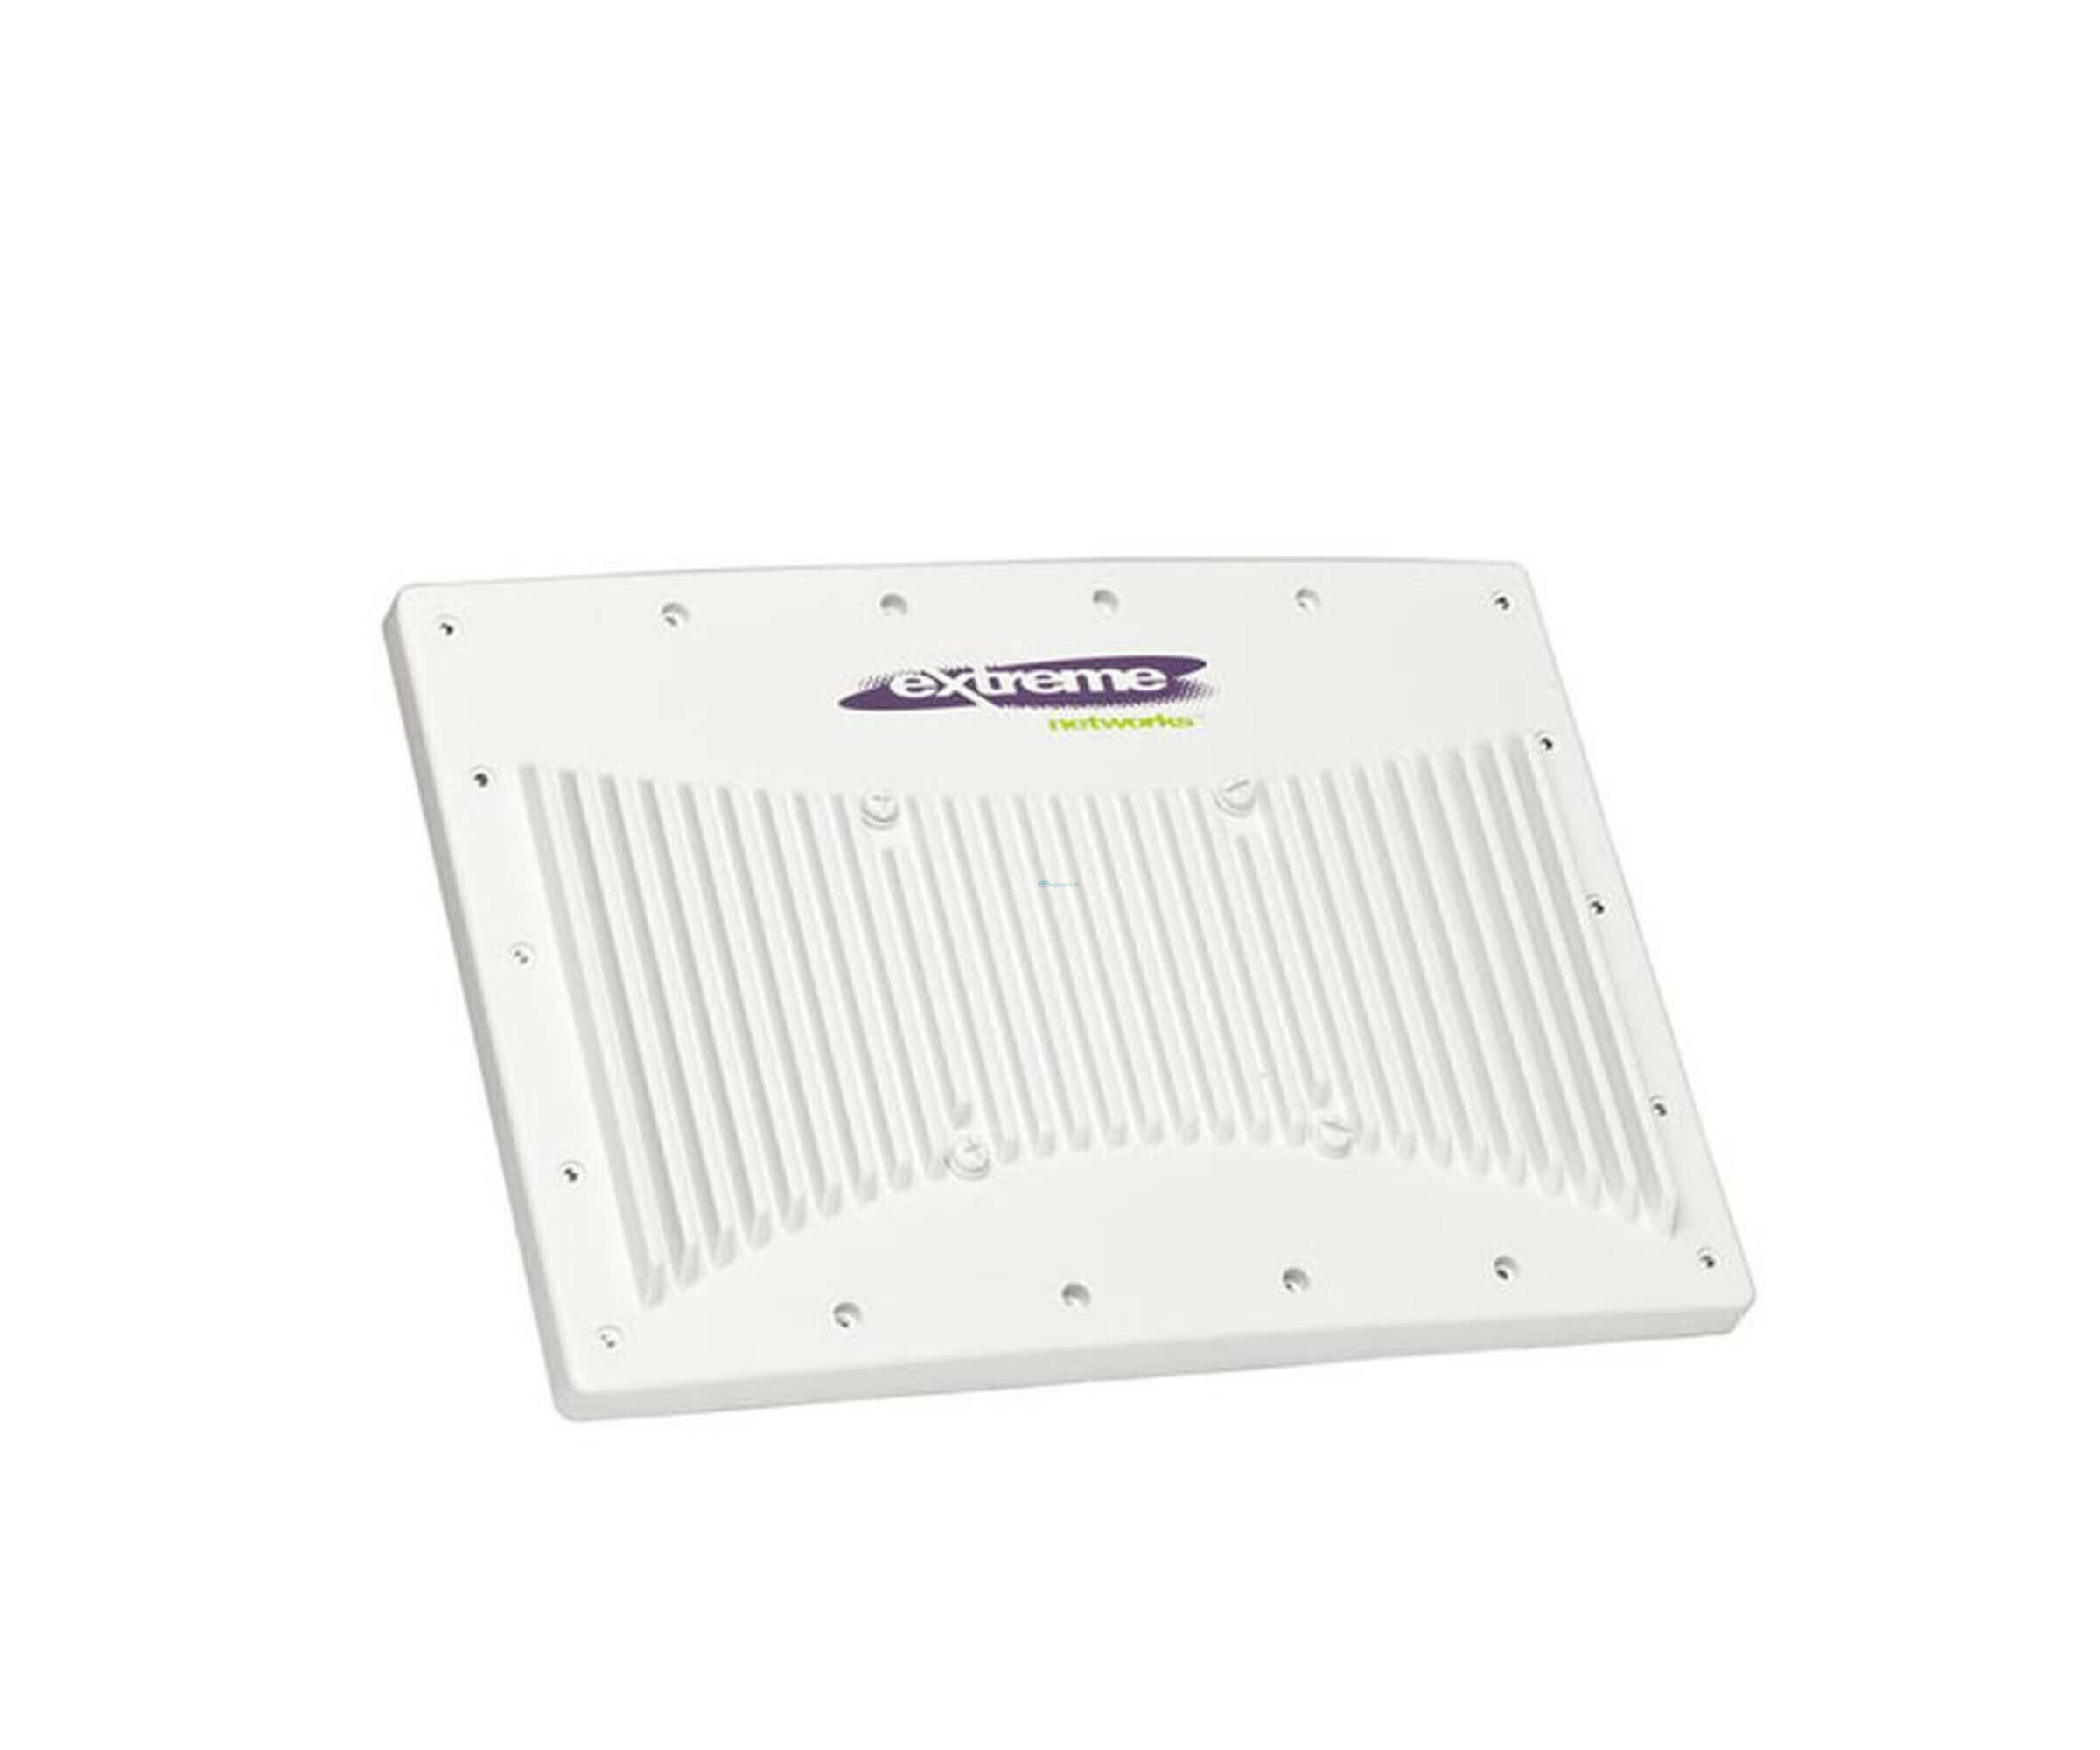 Extreme Networks Altitude 3550 Outdoor Access Point - Gebraucht